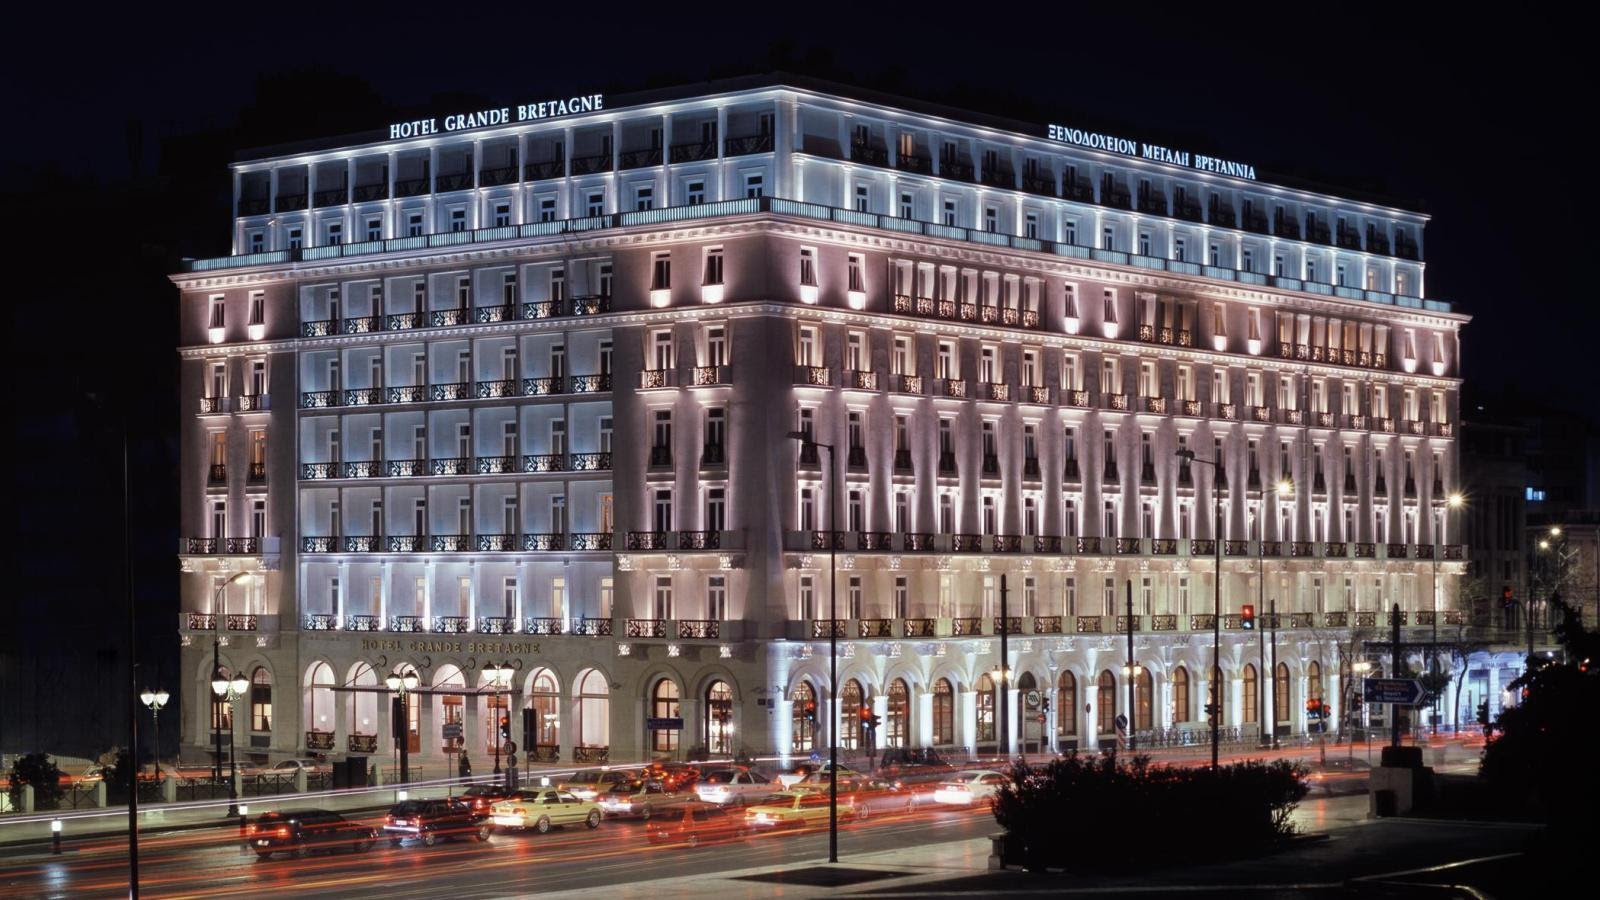 Eternal Elegance in the Heart of Europe's Historic Capital